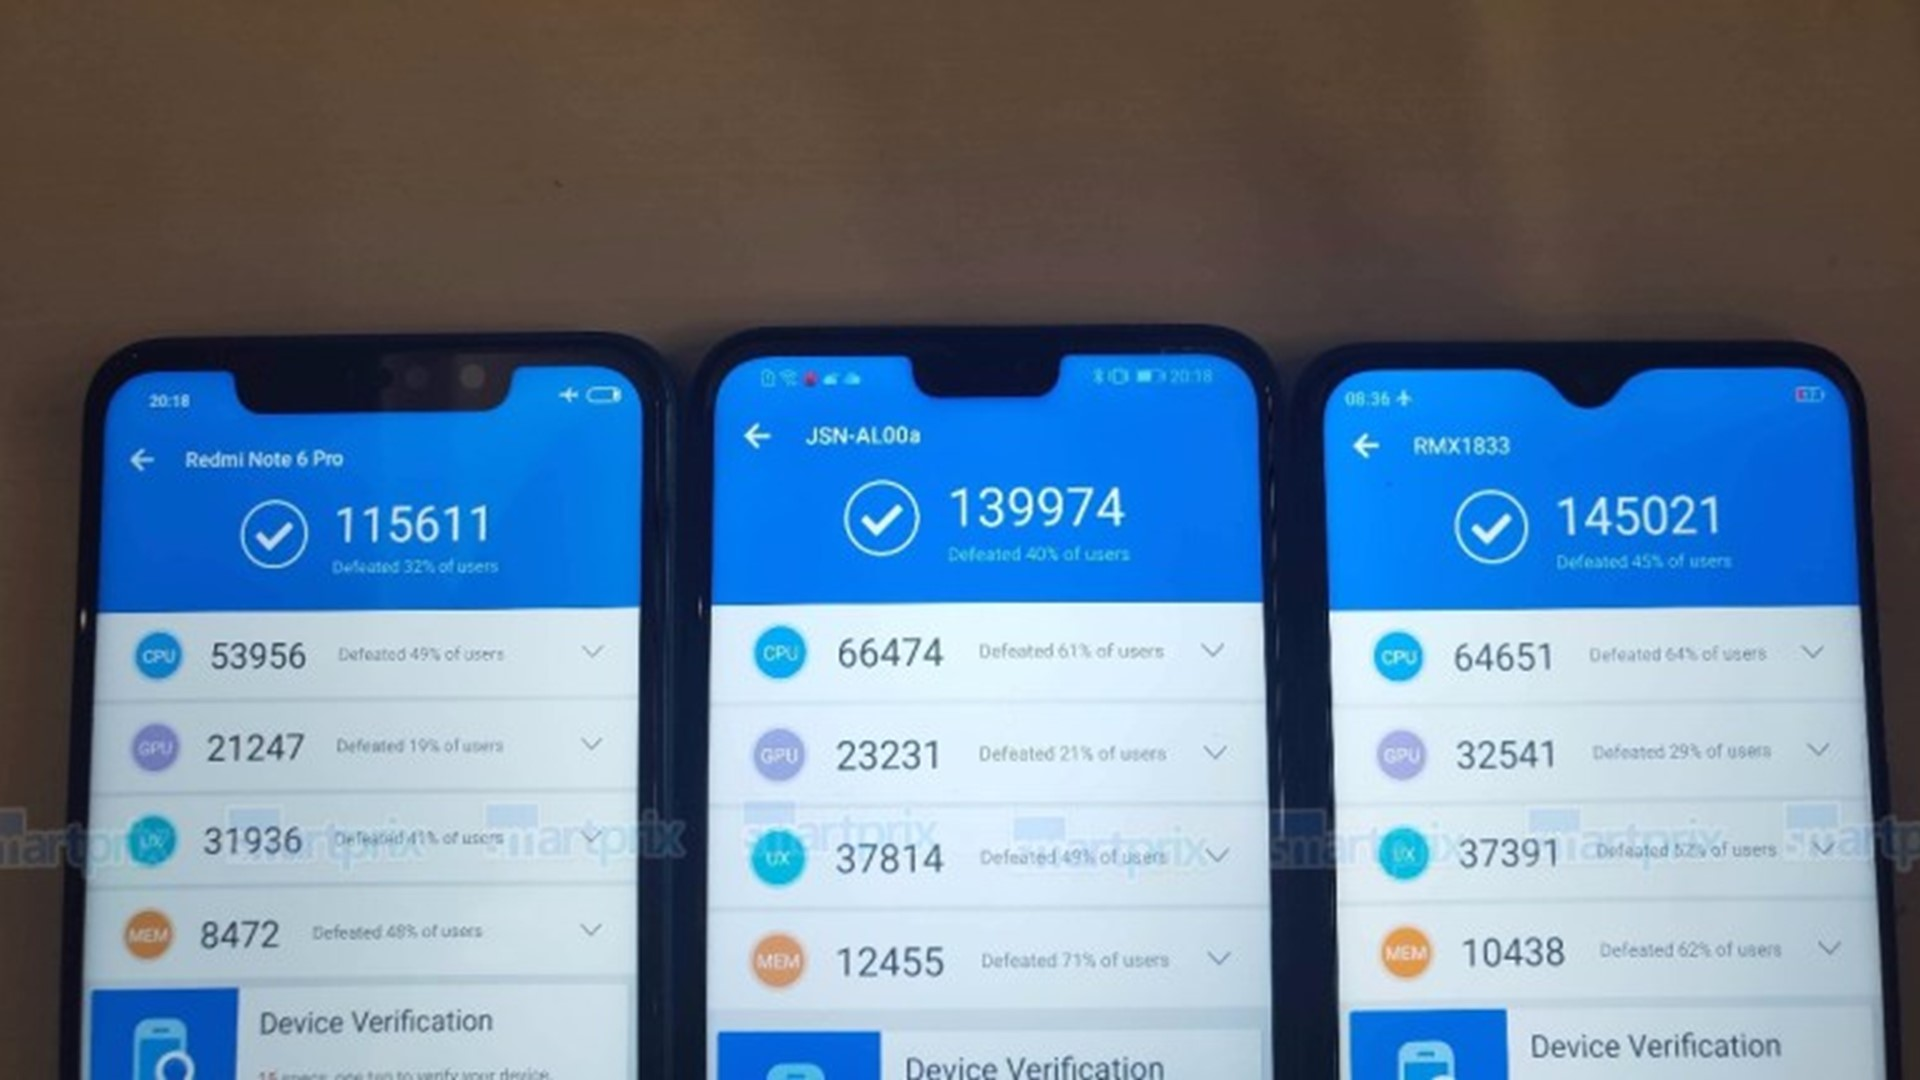 Realme U1 allegedly scores better than Redmi Note 6 Pro and Honor 8X on AnTuTu